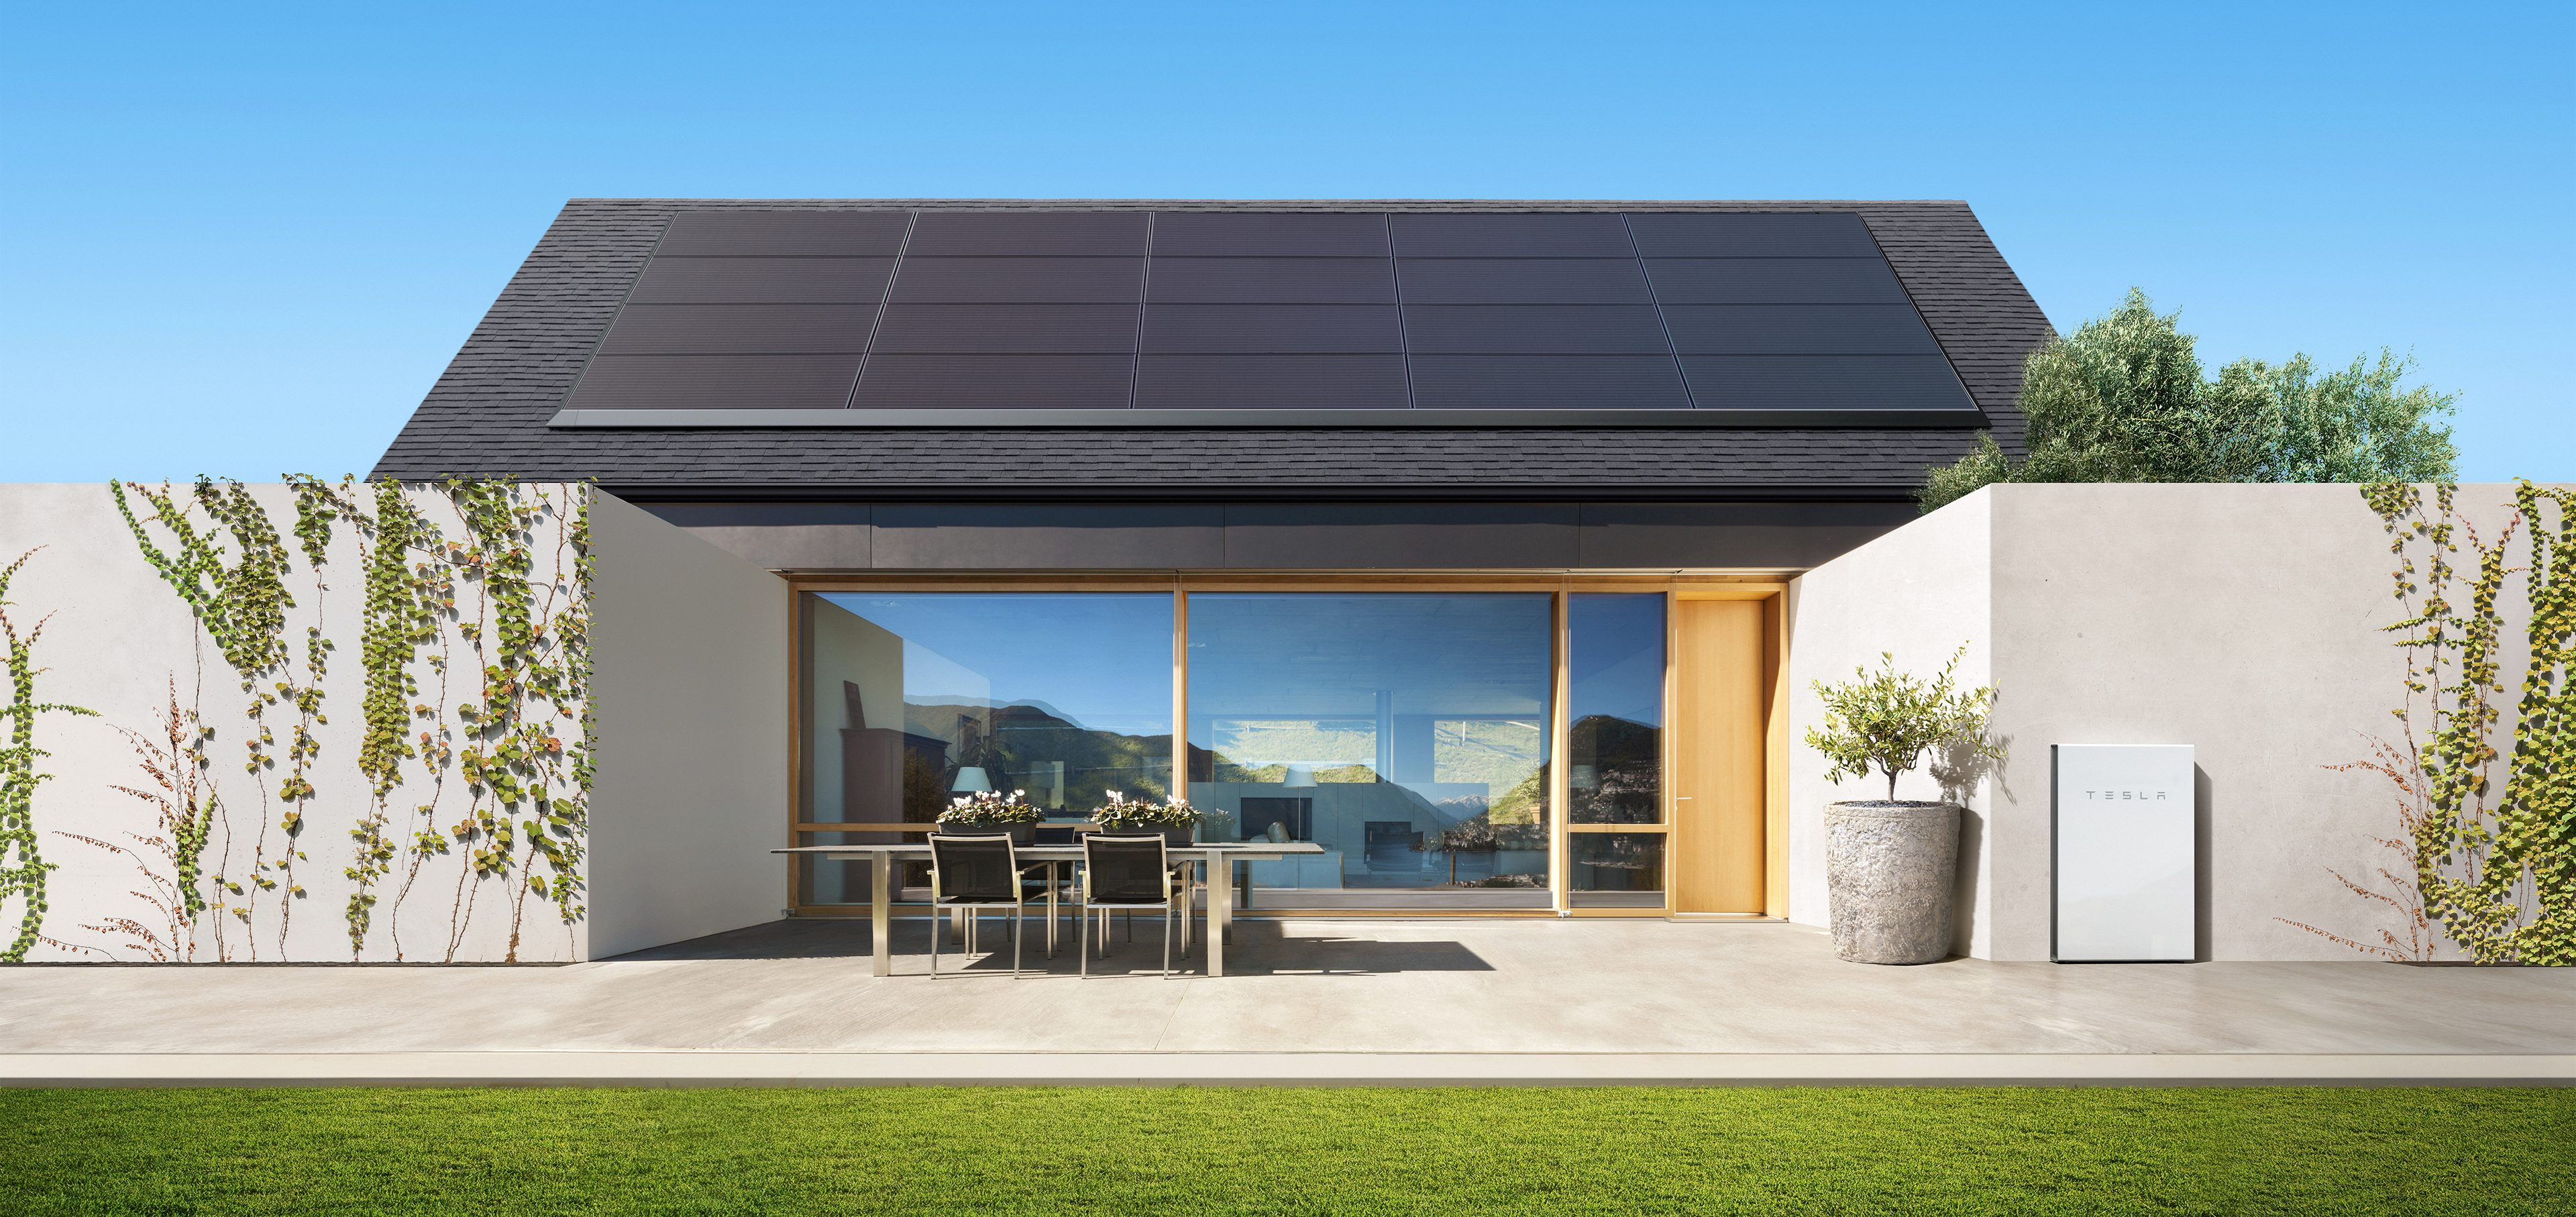 Tesla is installing Powerwalls and solar power on 50,000 homes to create biggest virtual power plant in the world